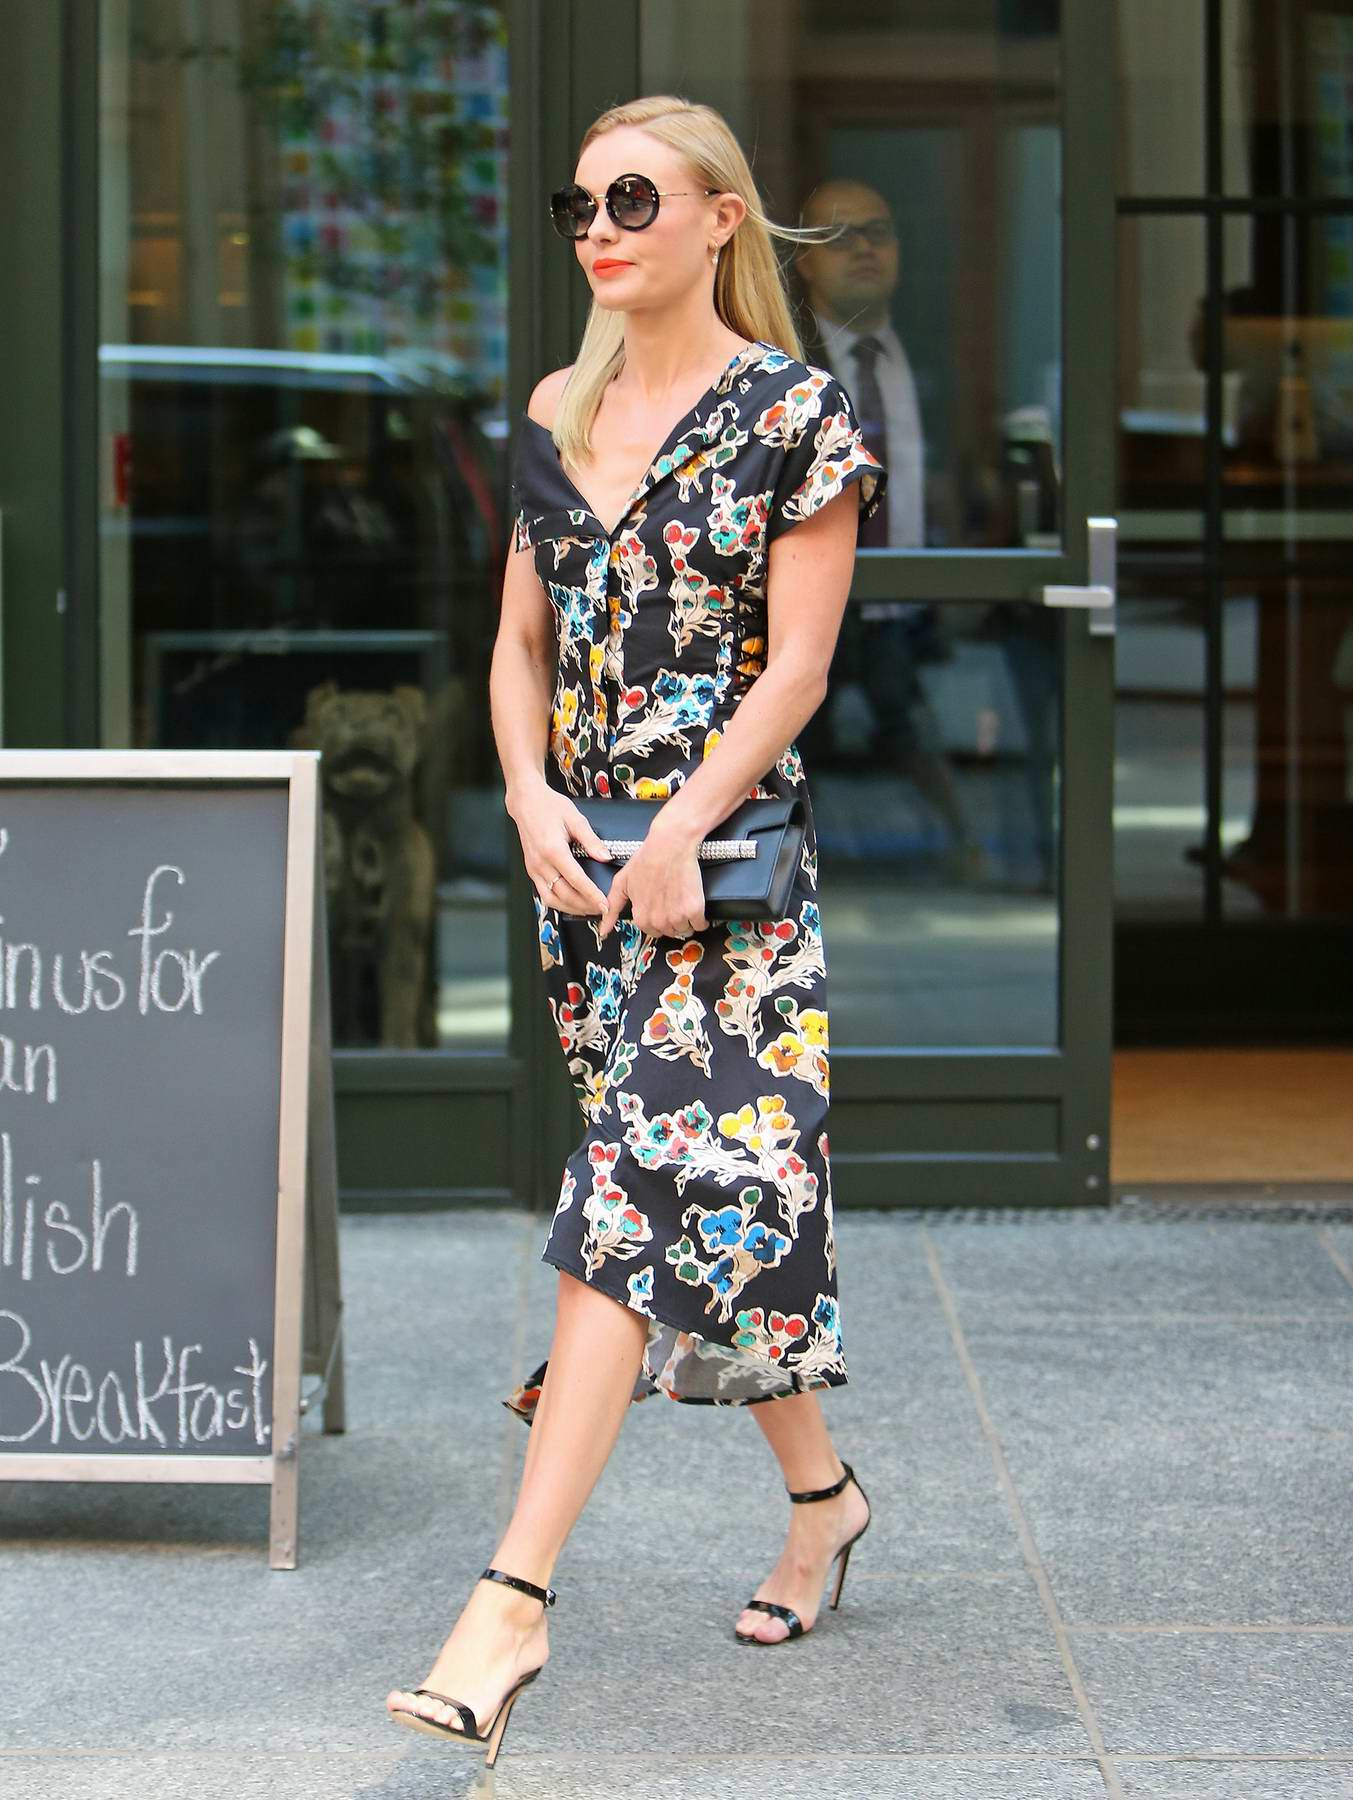 Kate Bosworth steps out wearing a floral dress while leaving her hotel during Fashion Week in New York City